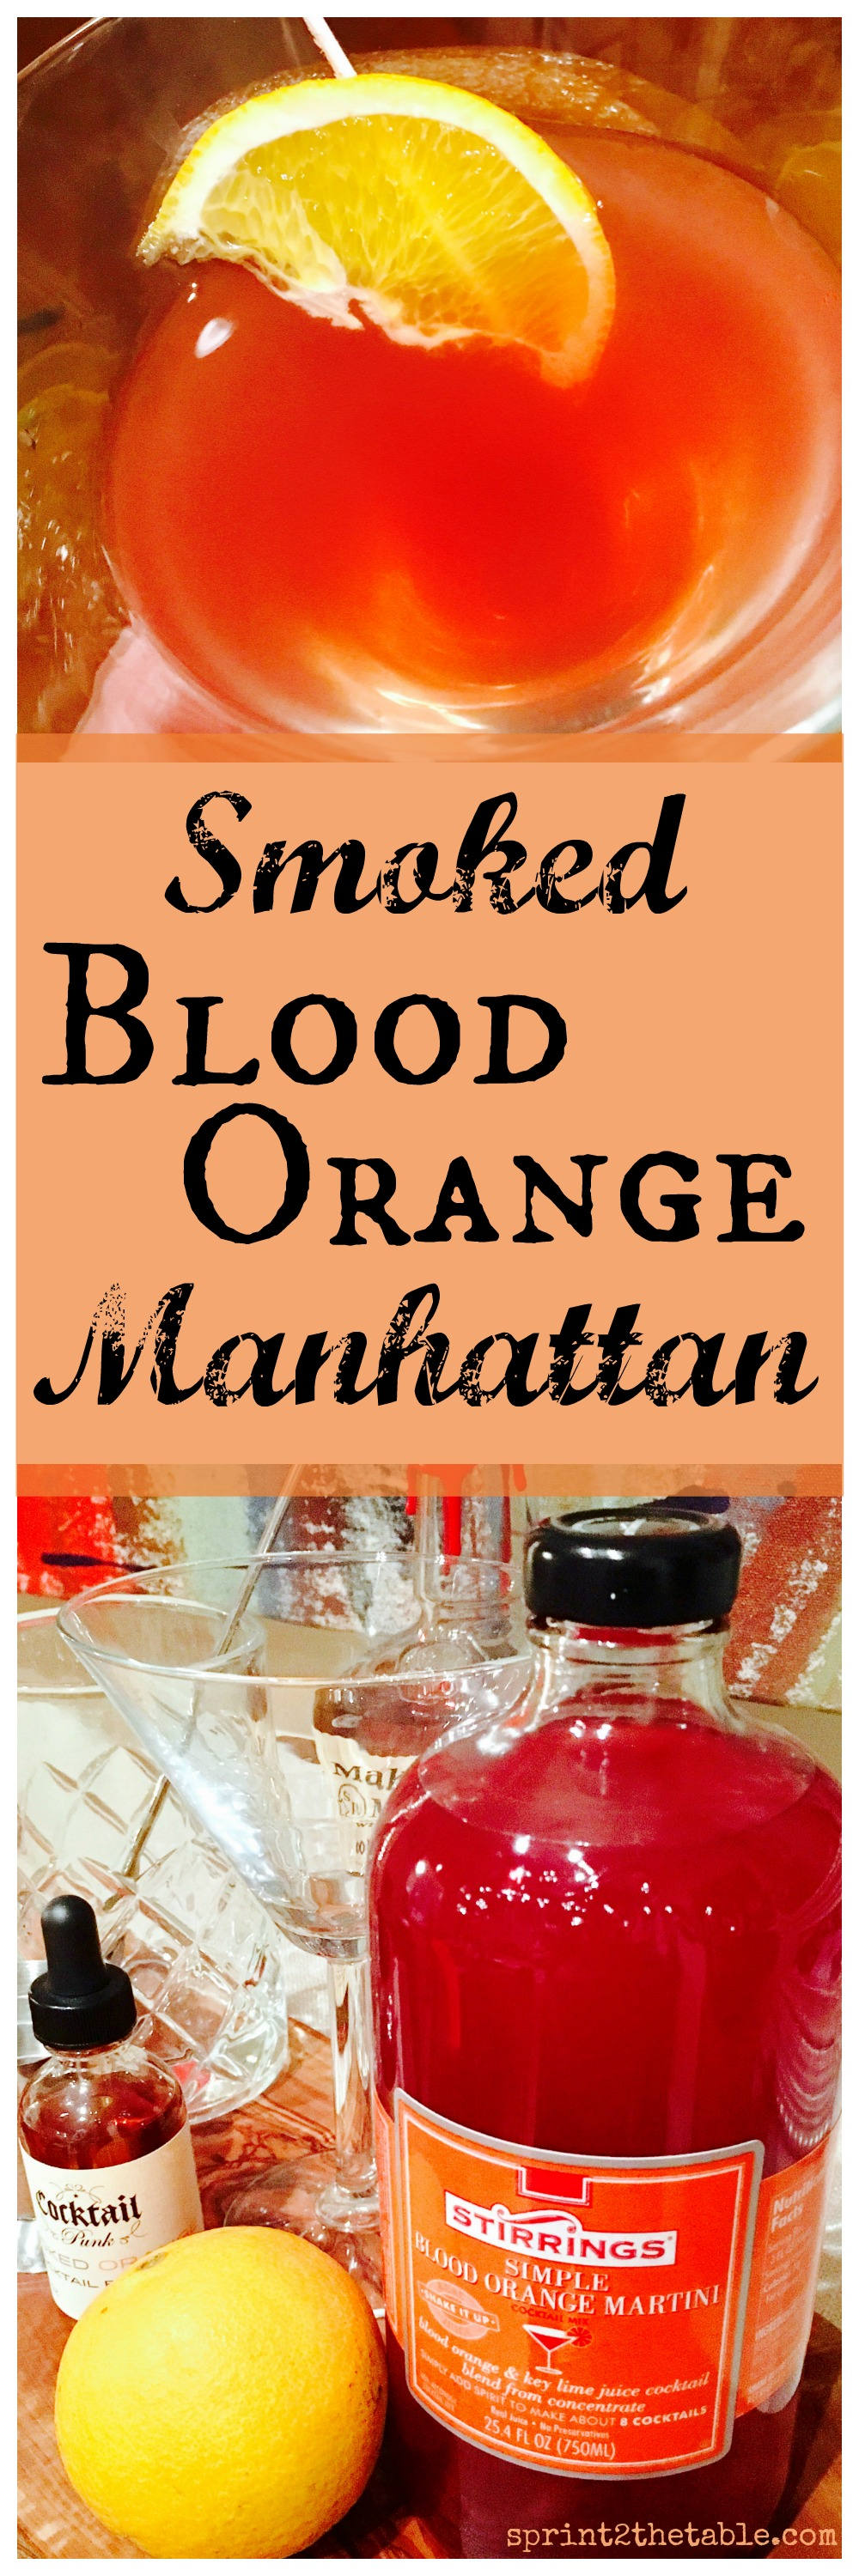 This Smoked Blood Orange Manhattan is a fun twist on a cocktail classic!